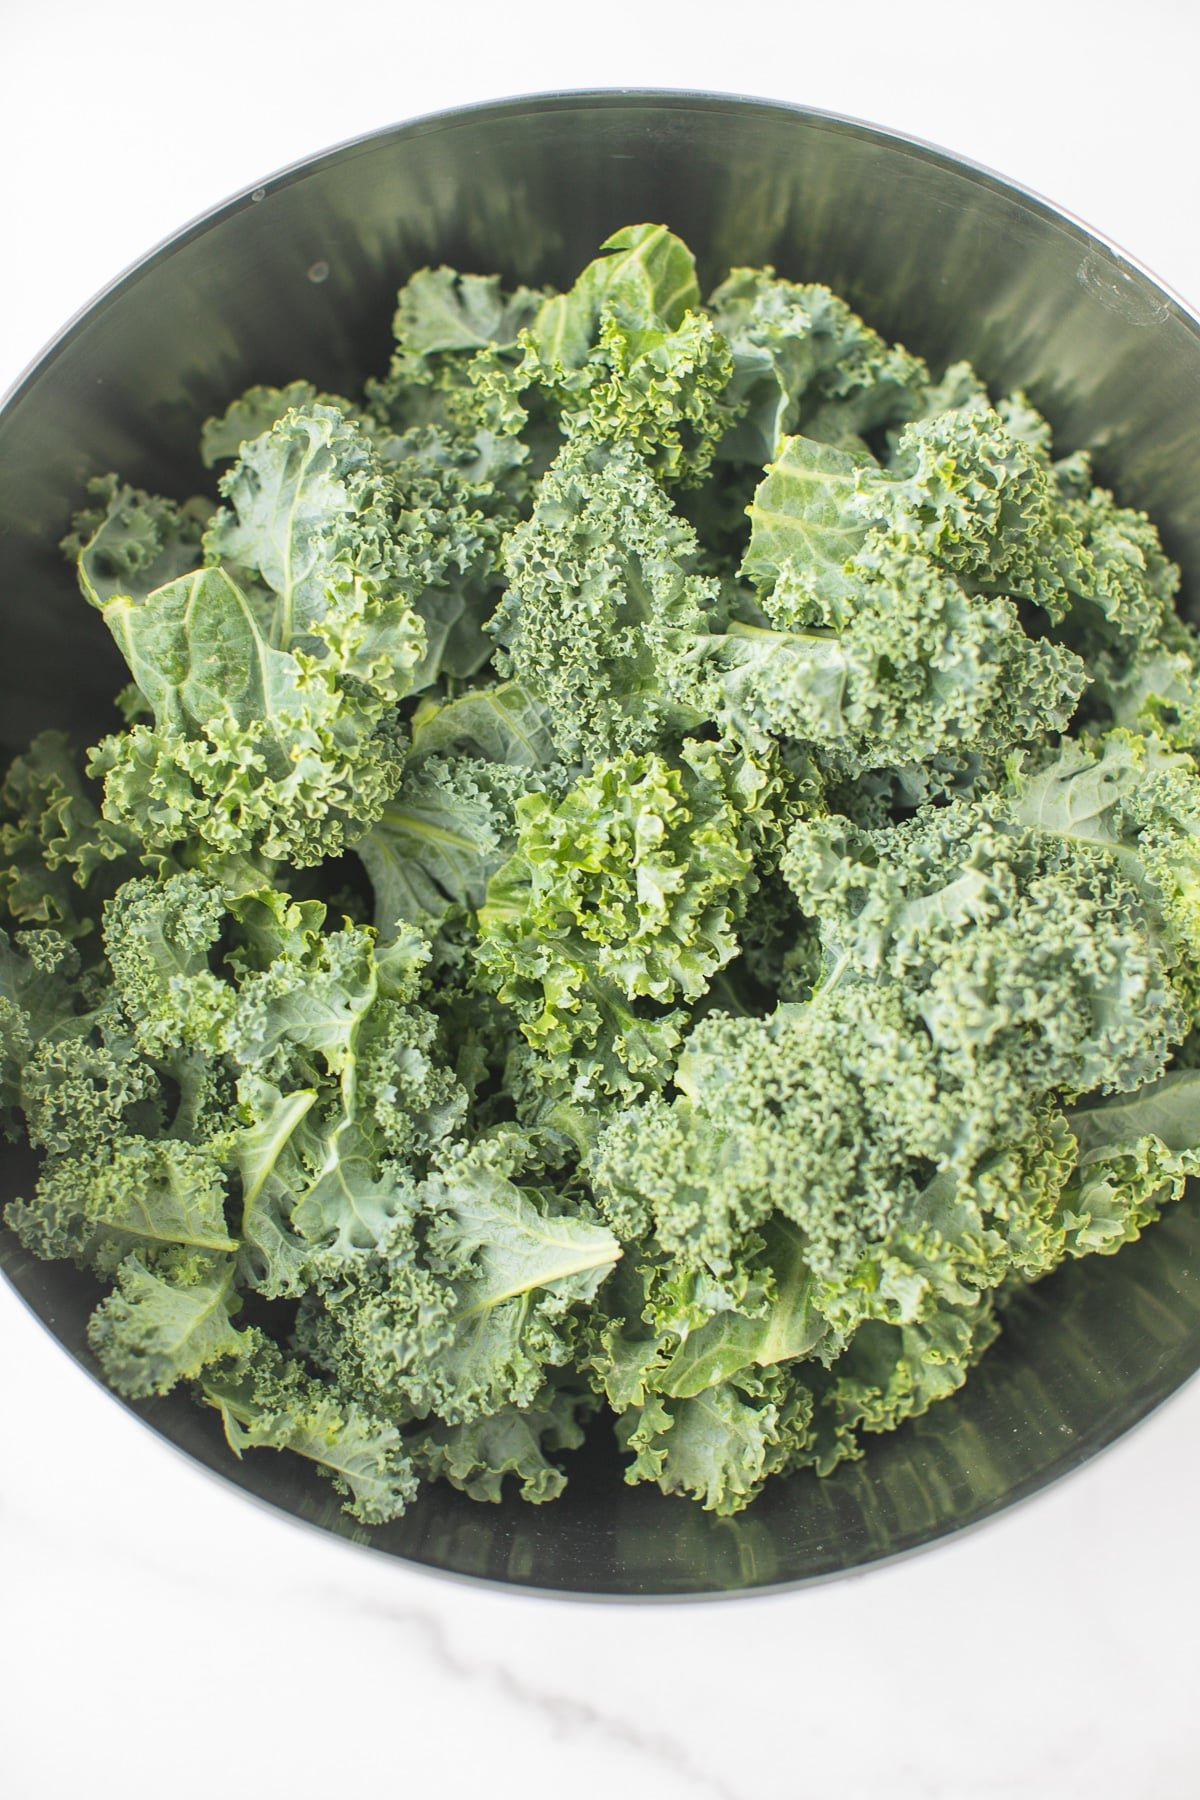 raw curly kale in a mixing bowl